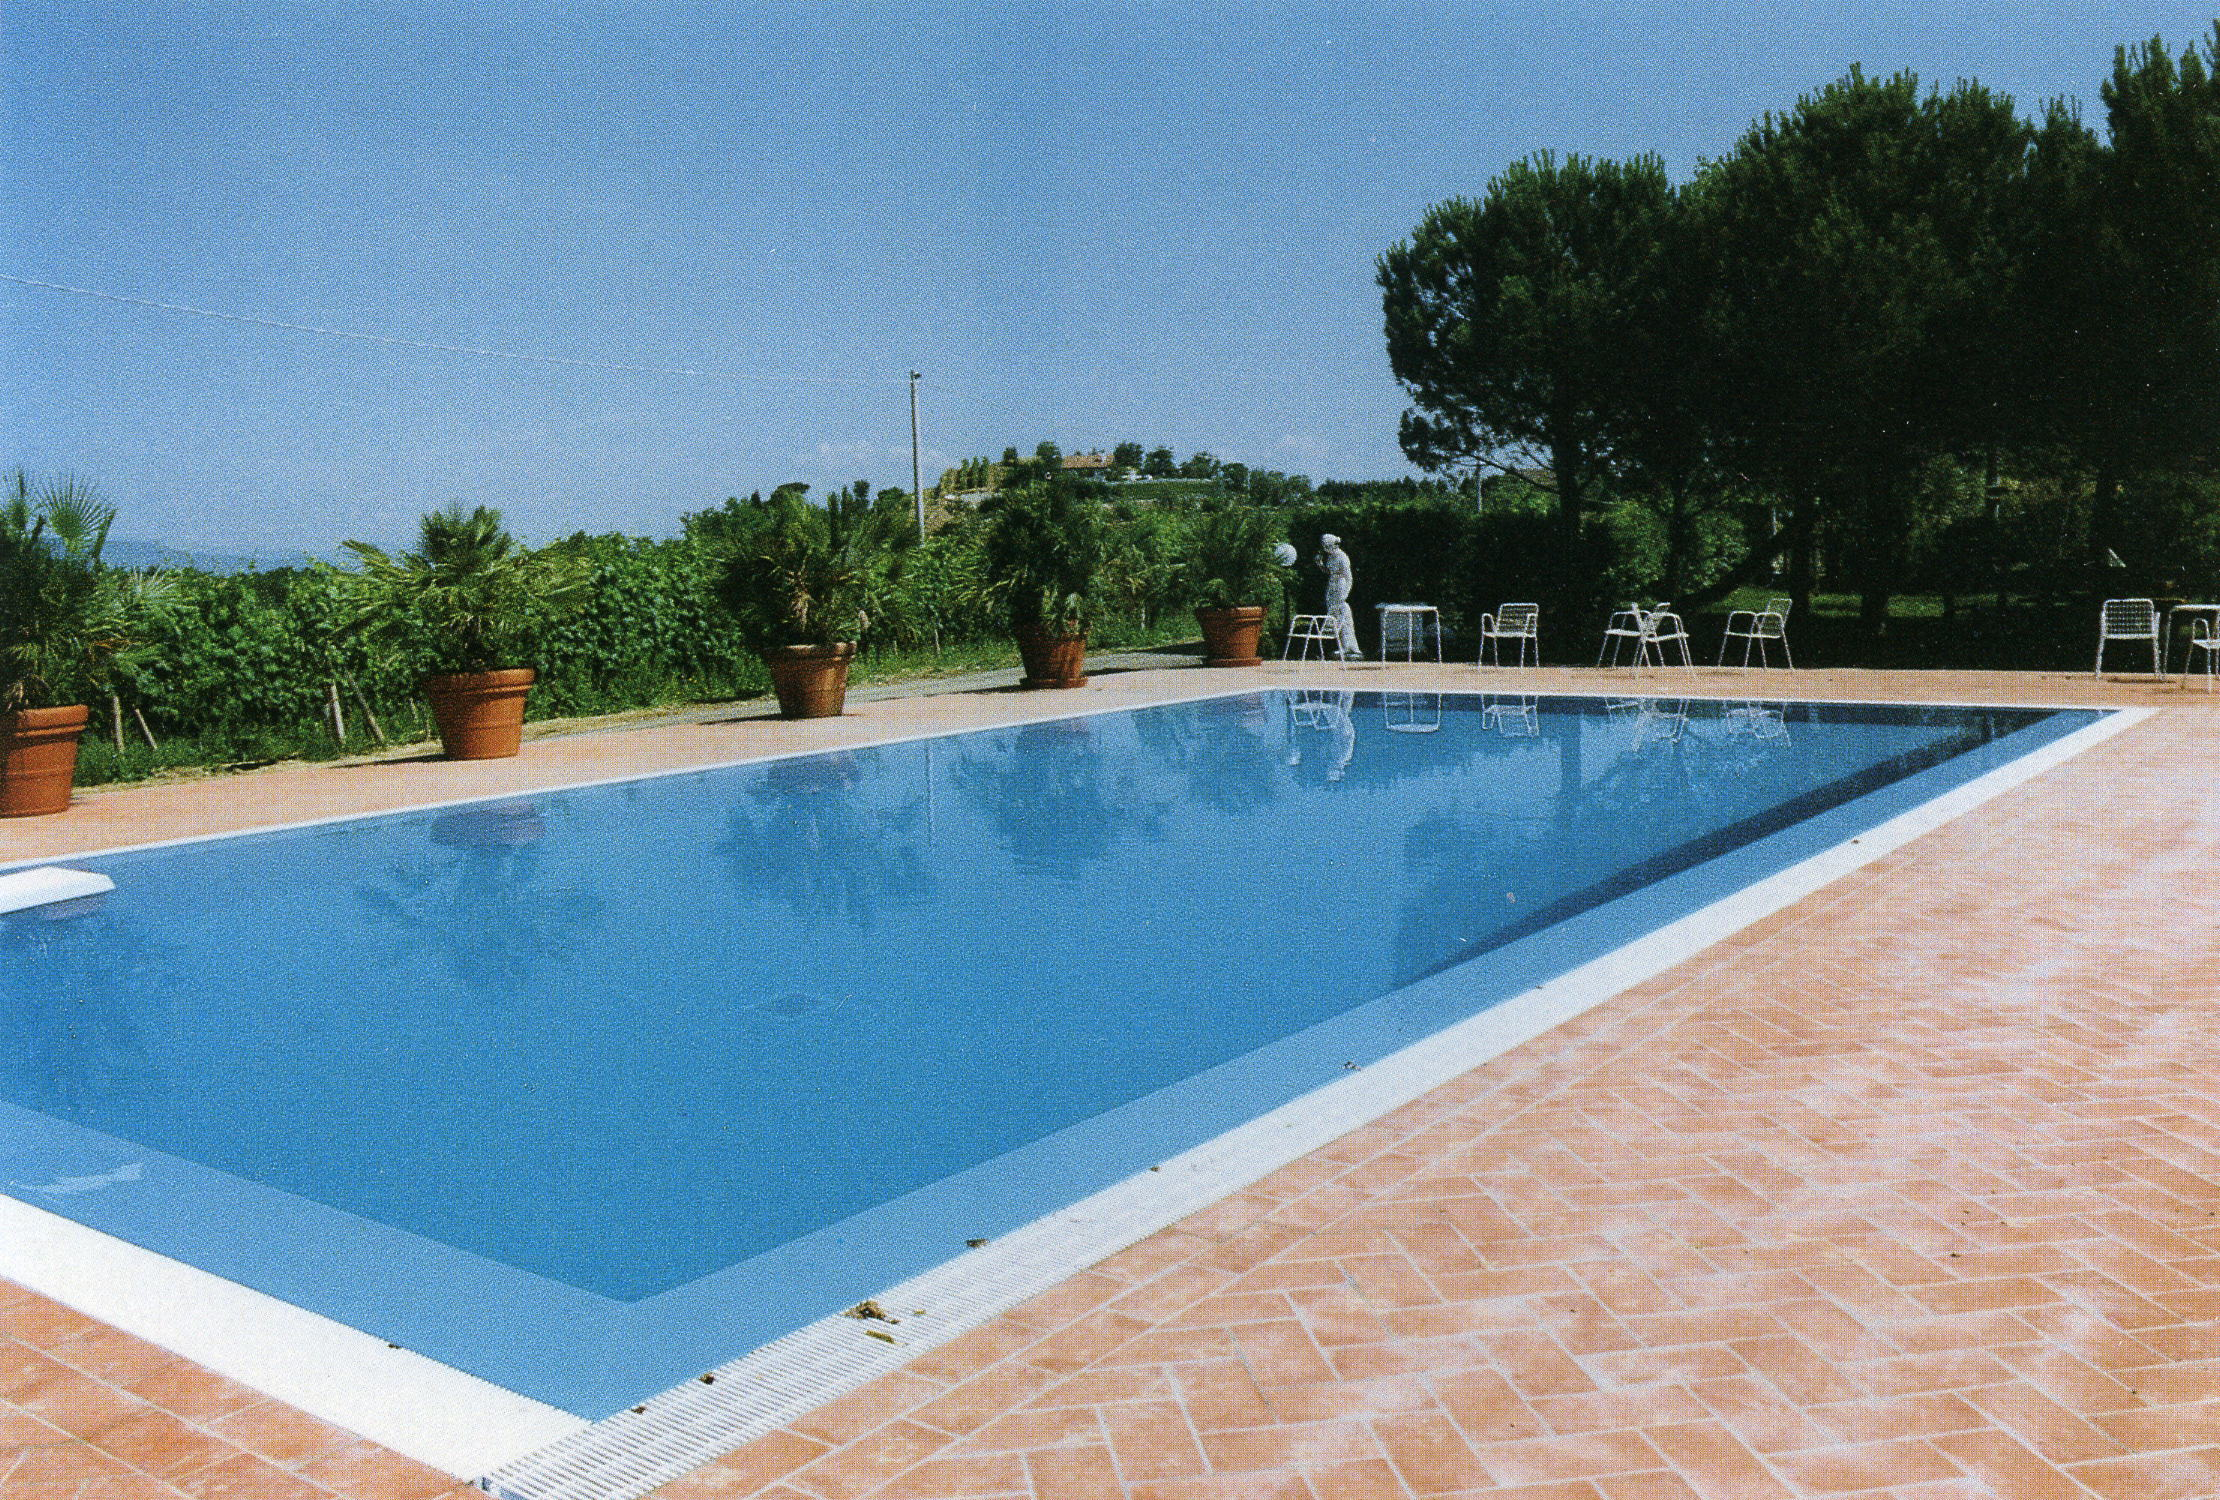 Piscine interrate tutto su ispirazione design casa for Piscine arc 1800